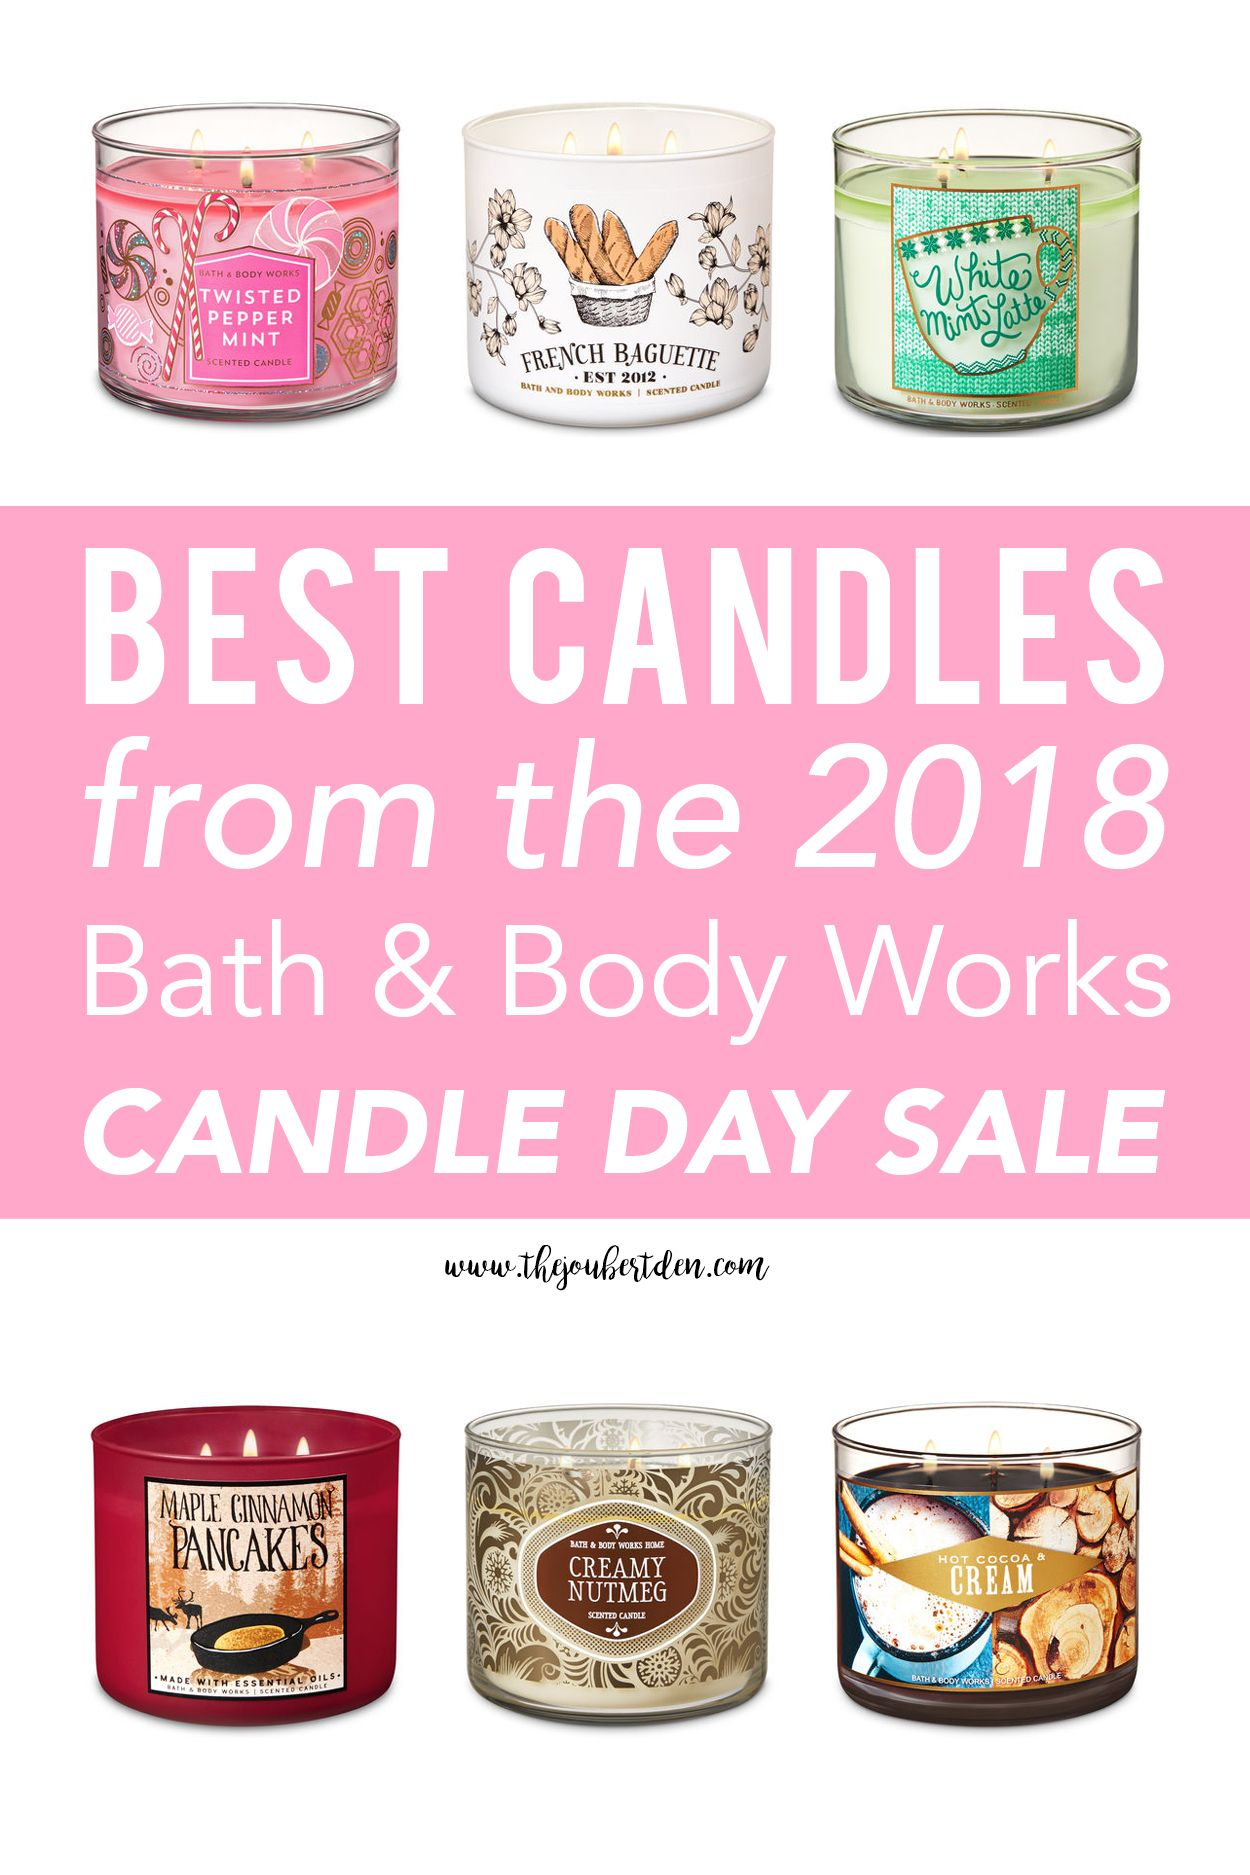 Bath And Body Works Candle Day Sale 2018 Best Scents Shopping Tips Bath Body Works Candles Bath And Body Works Body Works